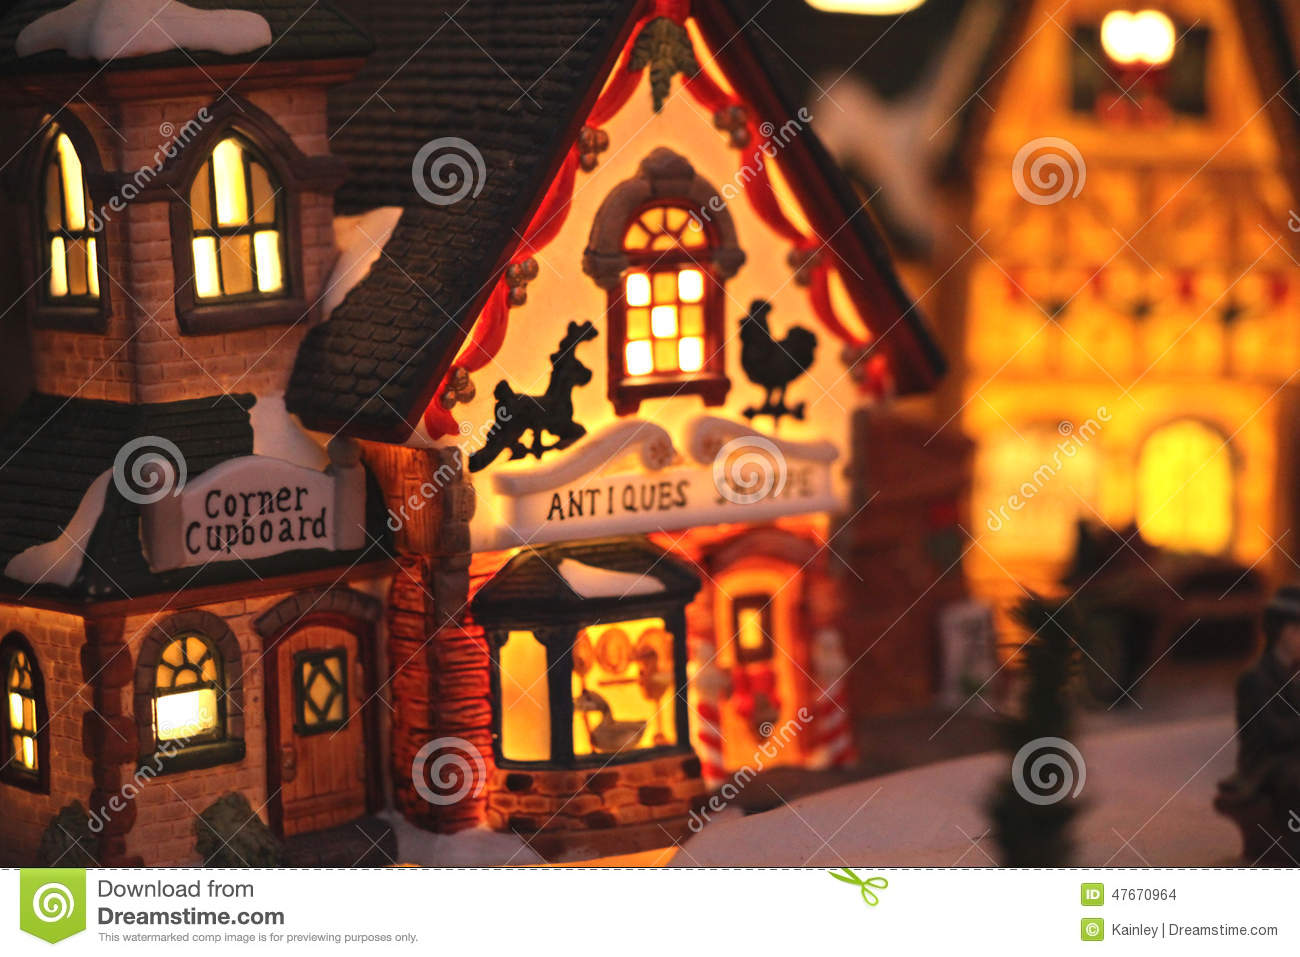 christmas village decorations - Christmas Village Decorations